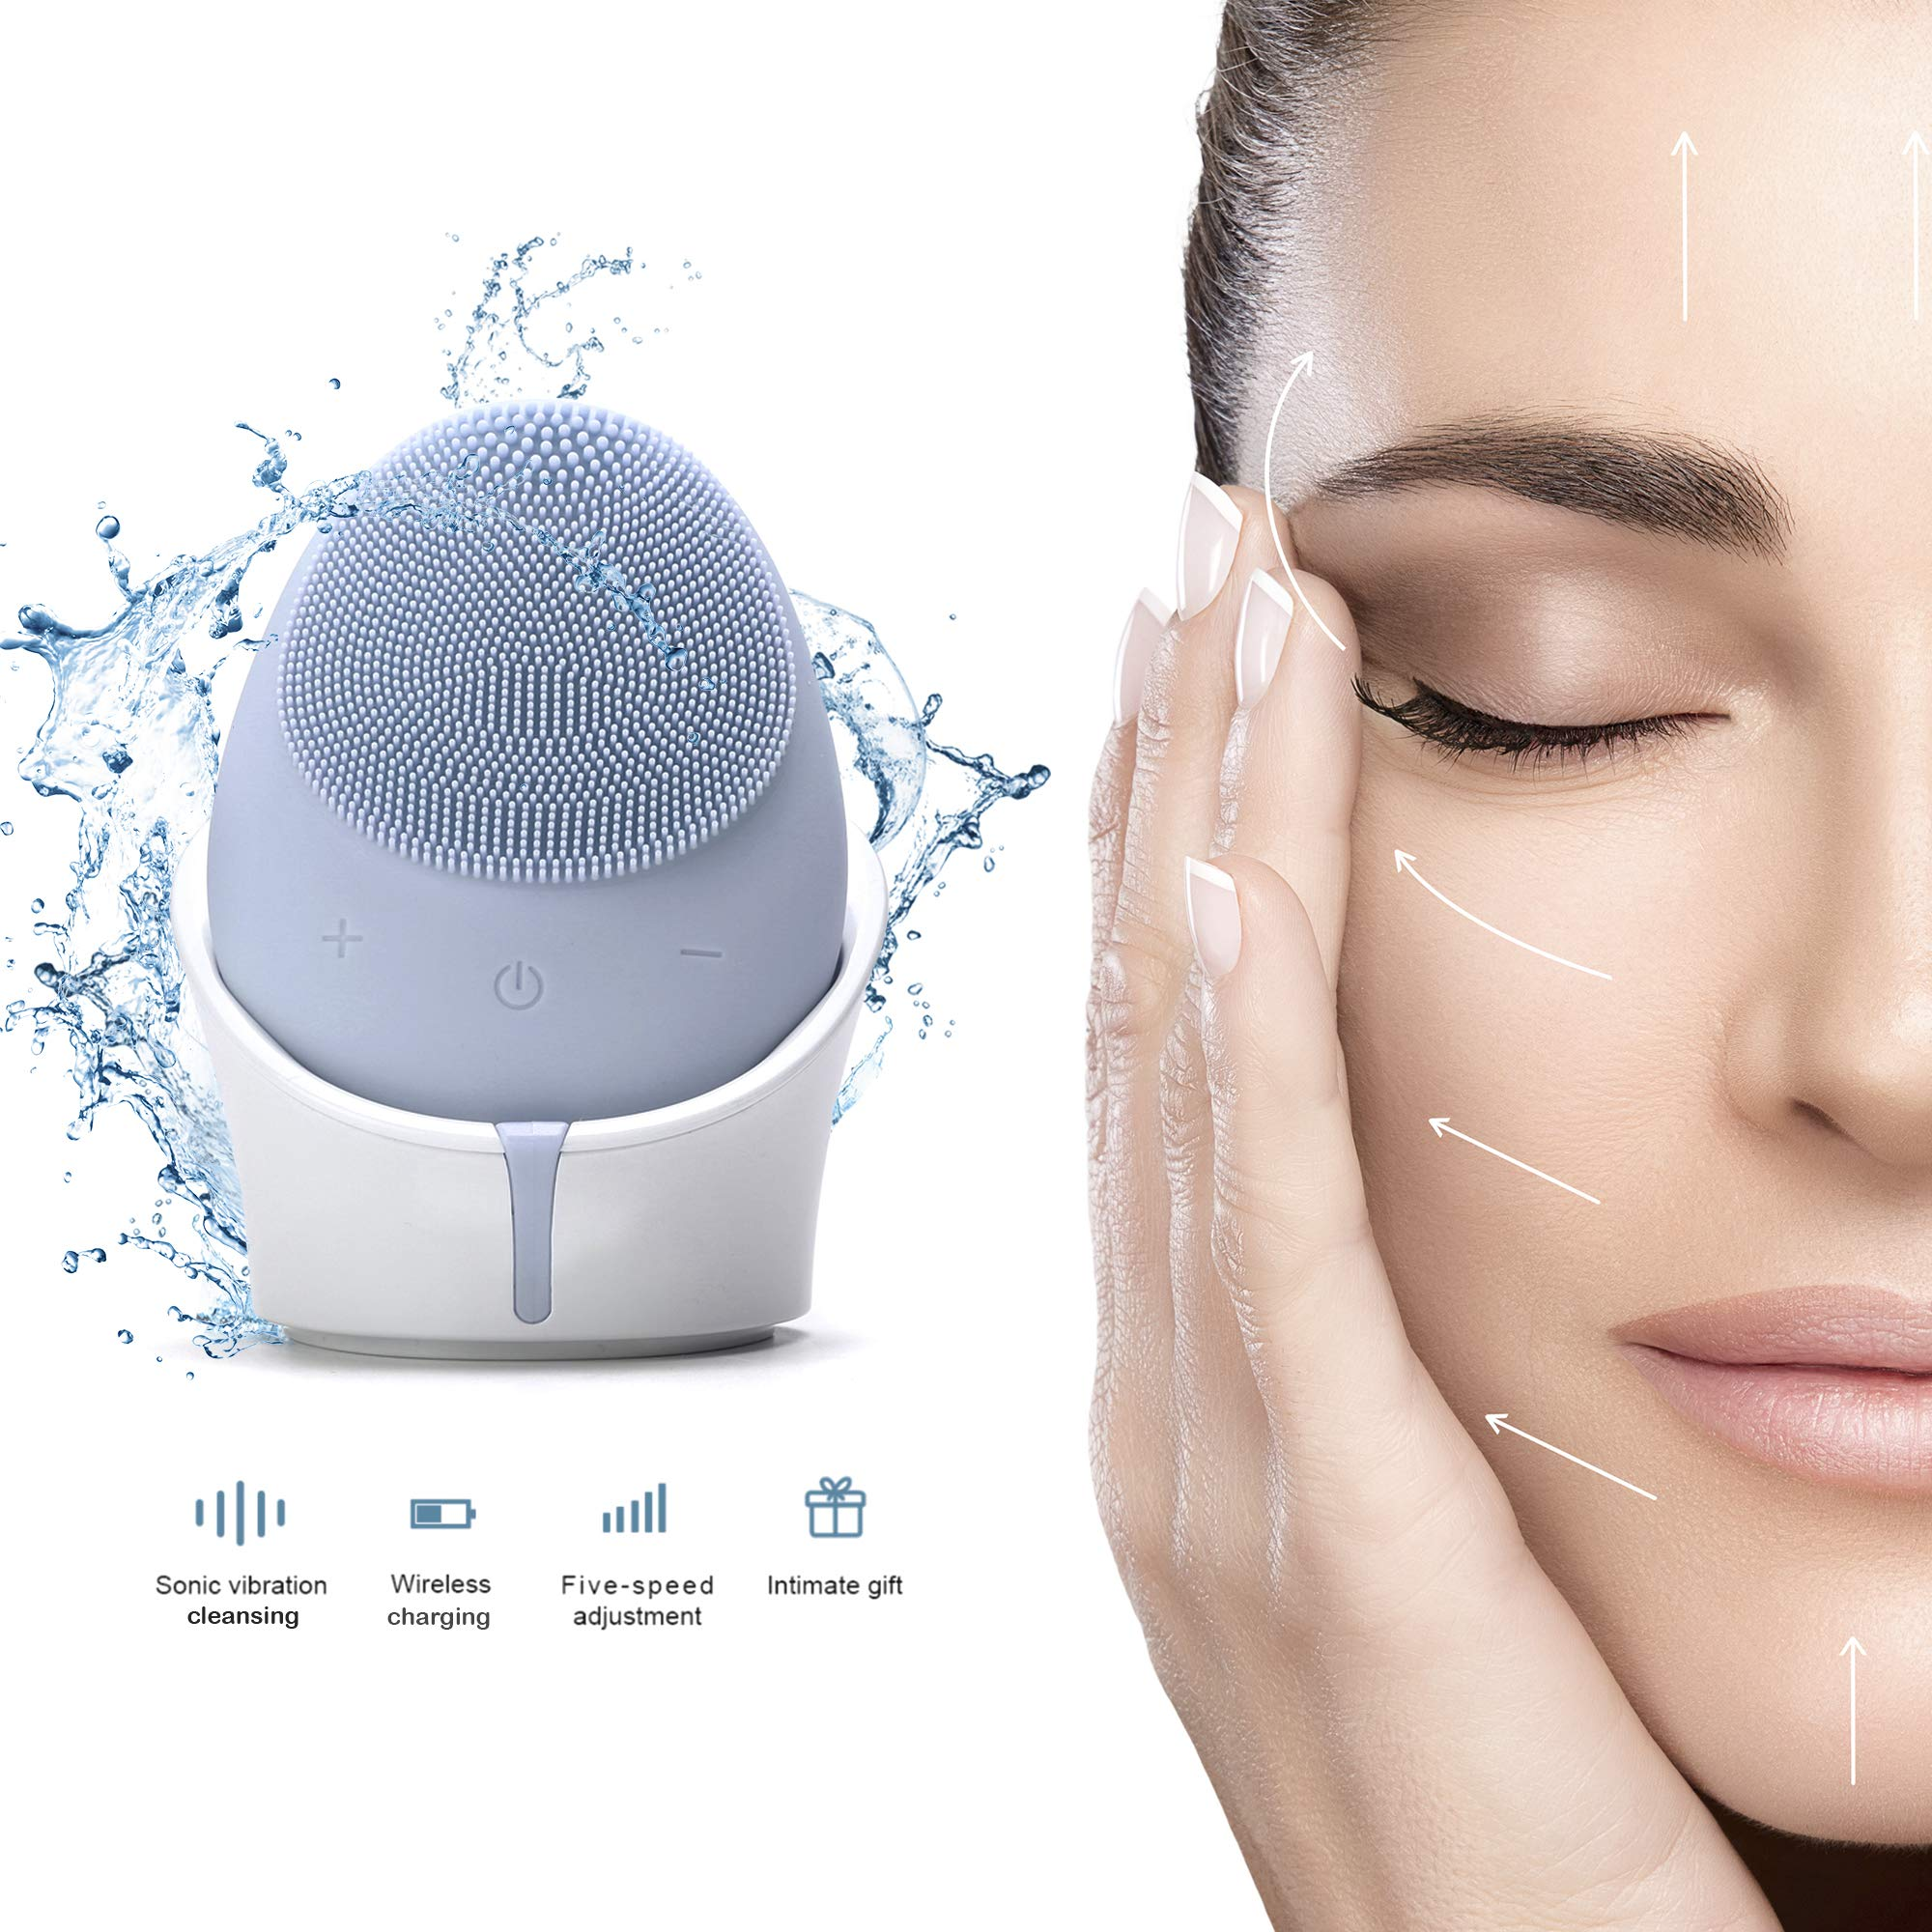 Facial Cleansing Brush Wireless - Experience Gentle Facial Exfoliation with This Electric Rechargeable Waterproof Facial Brush - Deep Clean Brush Heads